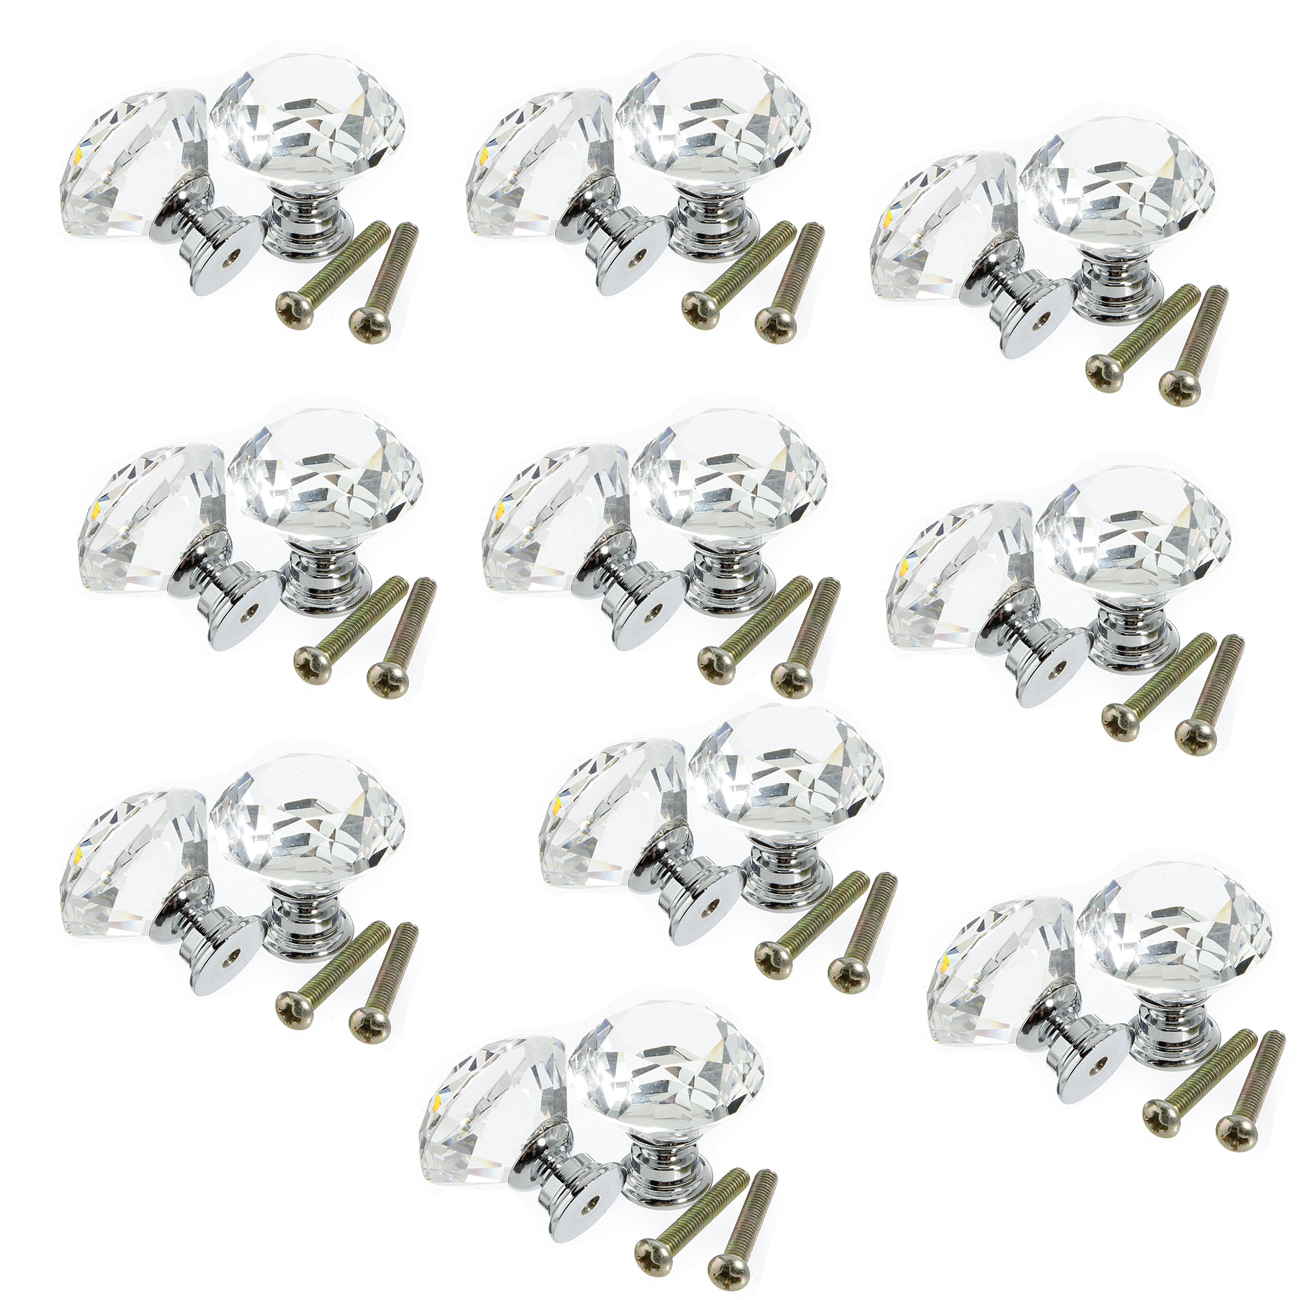 Promotion! 10pcs 30mm Diamond Crystal Glass Door Drawer Cabinet Furniture Handle Knob Screw 662609 001 for 4g 1 4gb ddr3 1600 ecc g8 memory new condition with one year warranty